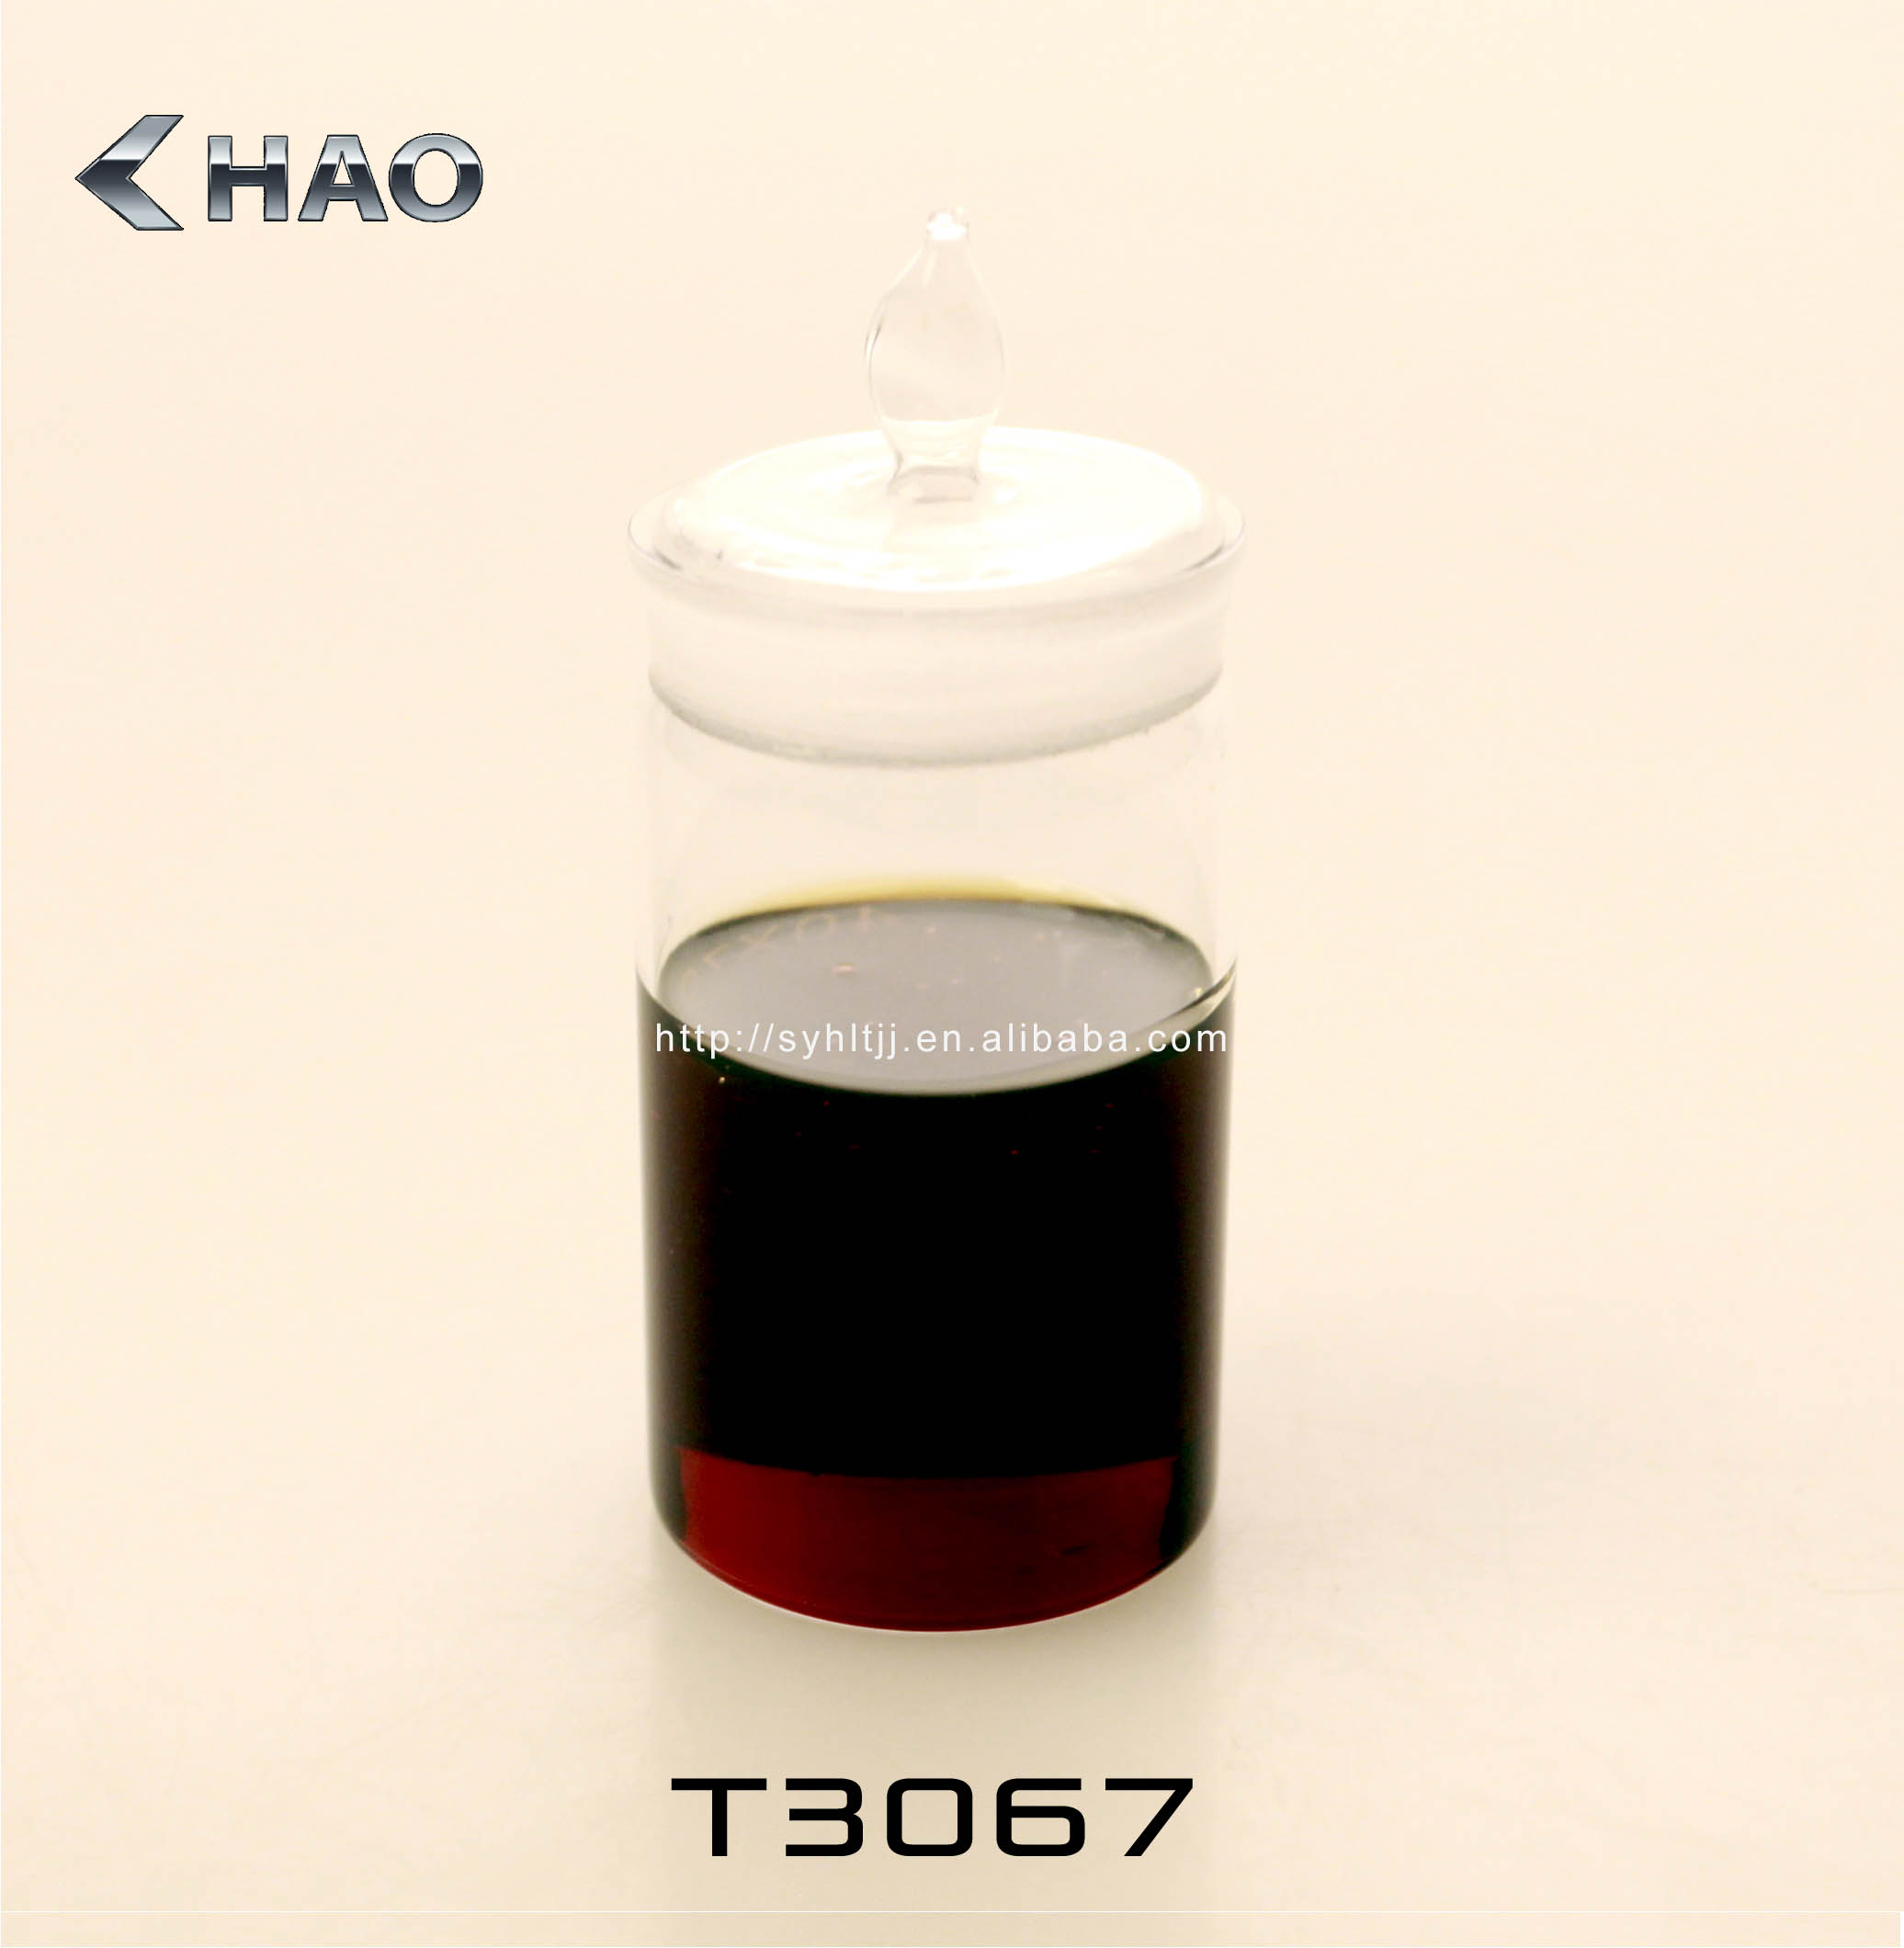 T3067 dual fuel engine oil additive package High Quality Gasoline Additives